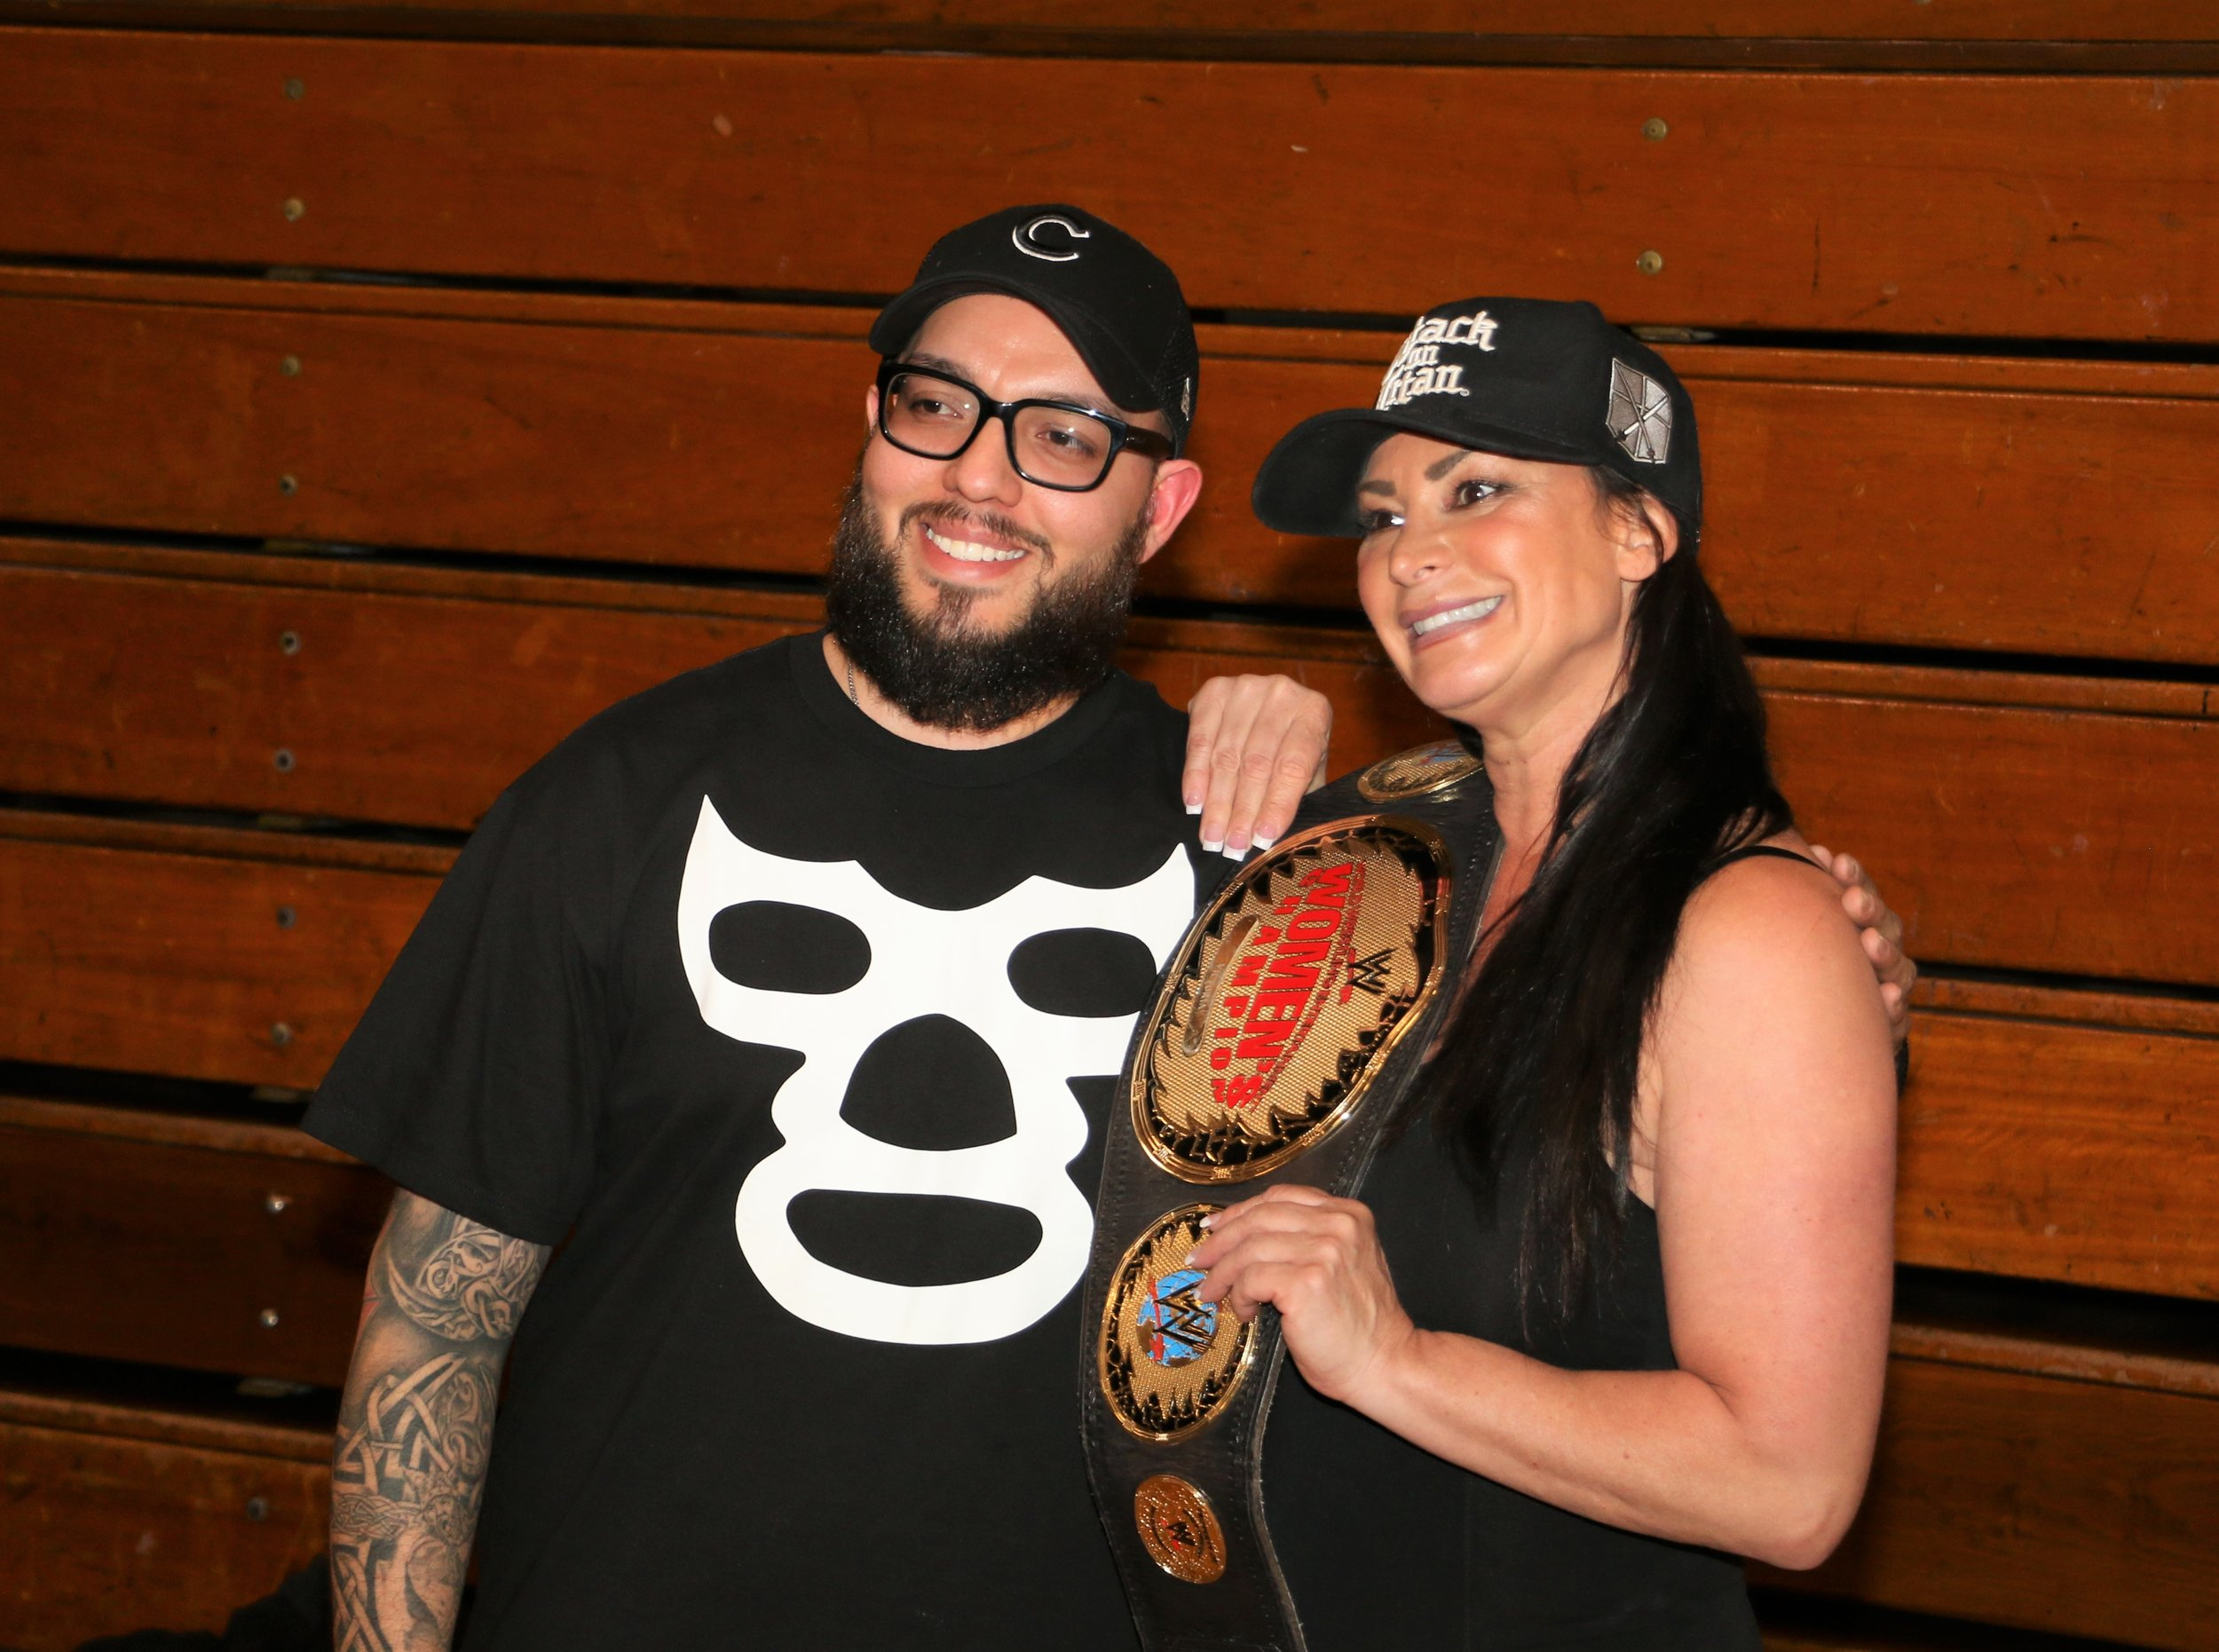 Lisa Marie Varon (formerly Victoria in WWE), right, poses with a fan at Warrior Wrestling 4 in March 2019. Varon will appear all four days at Wizard World Chicago in Rosemont this weekend.  (Photo by Mike Pankow)